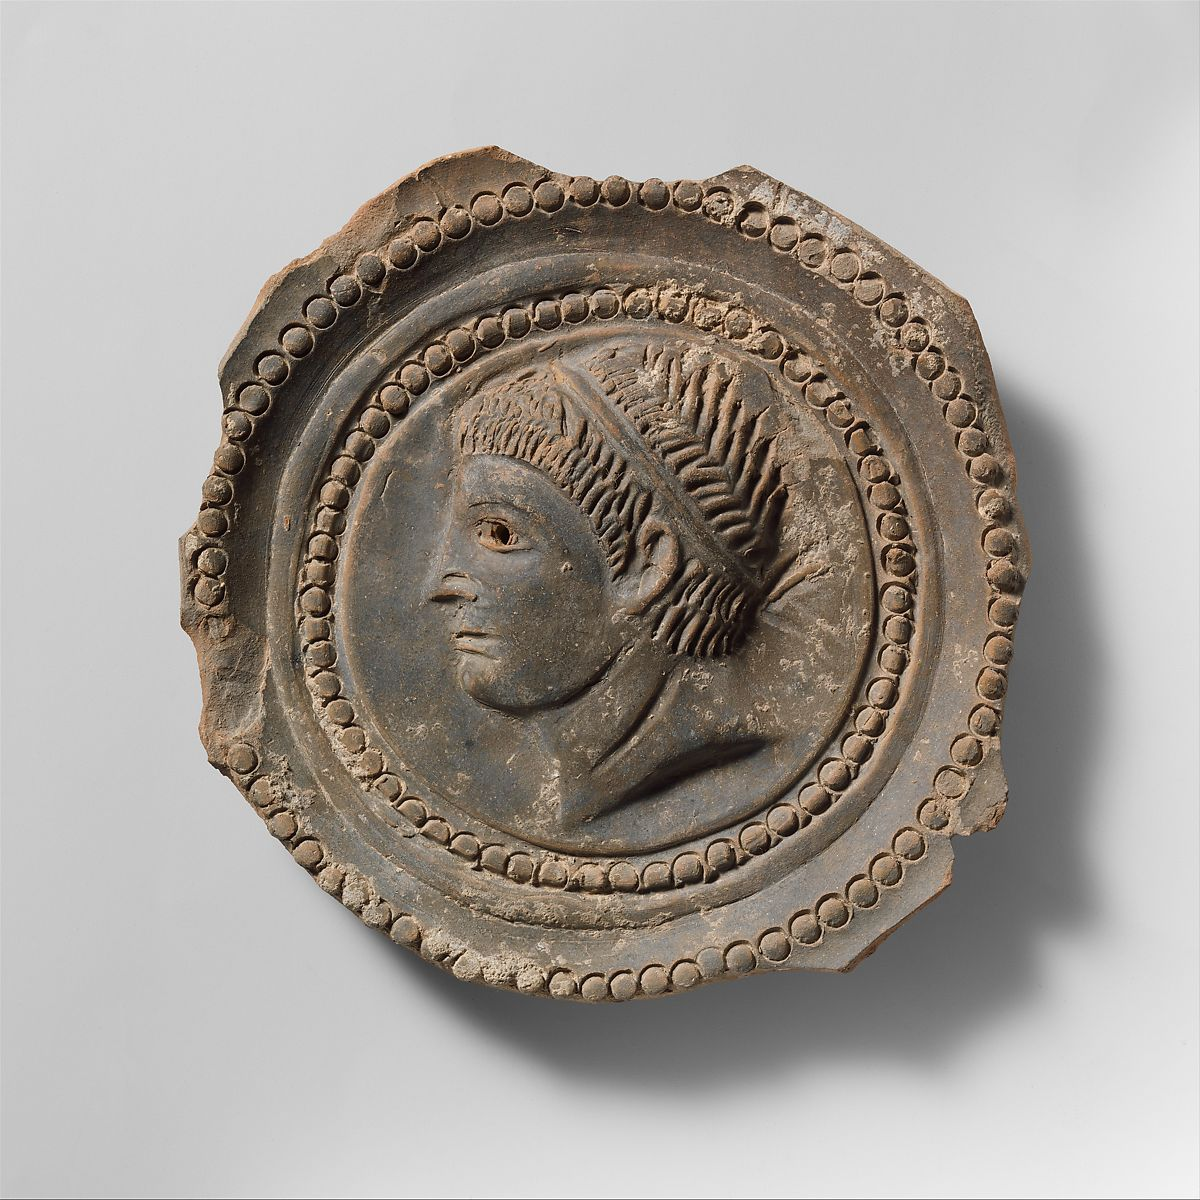 Fragmentary terracotta bowl with tondo | Roman | Imperial, Late Flavian–Hadrianic | The Met